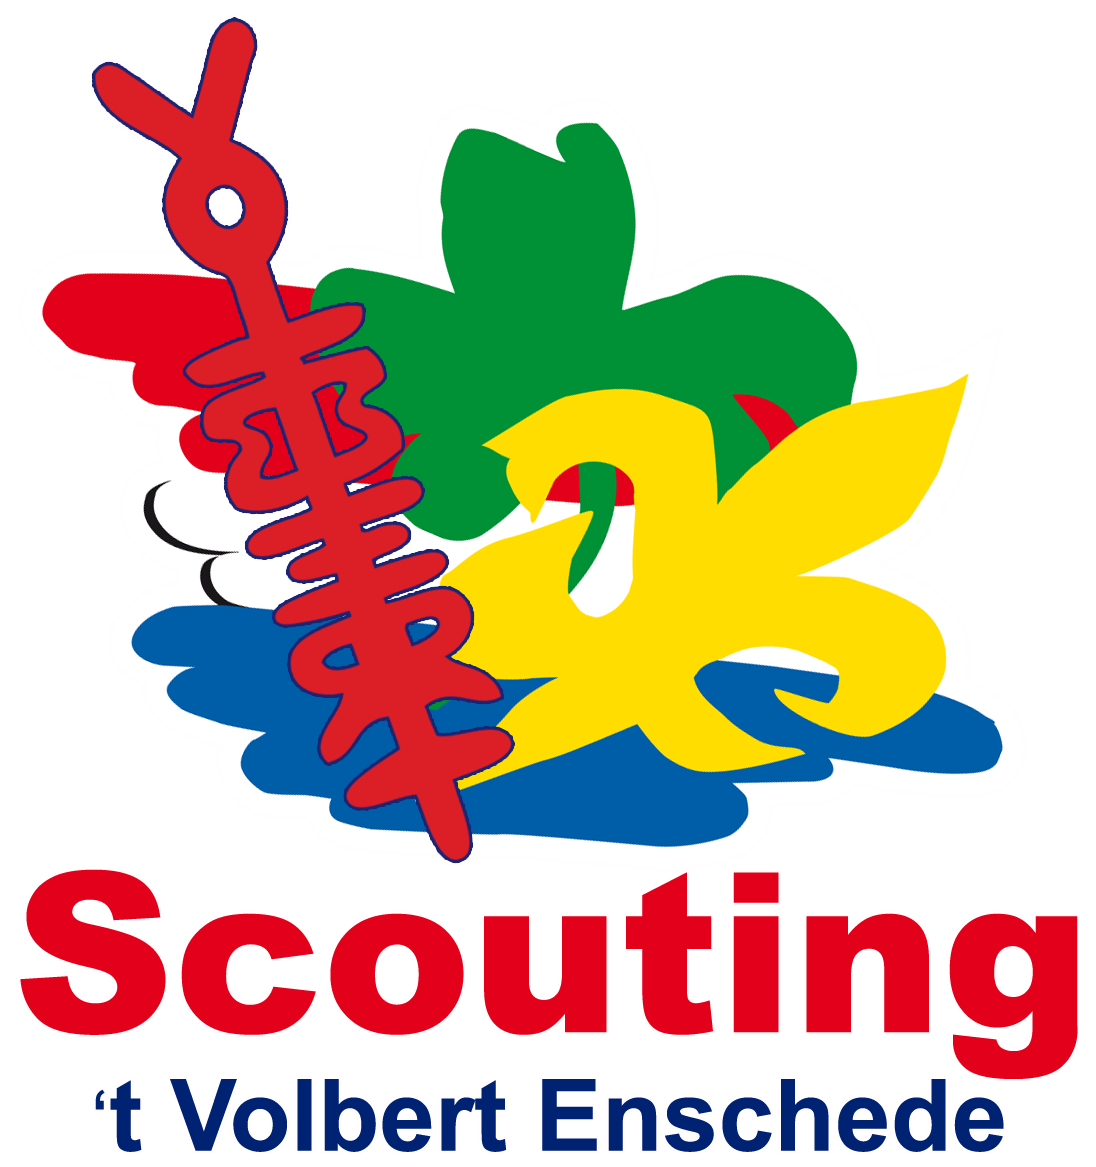 Scouting t Volbert Enschede